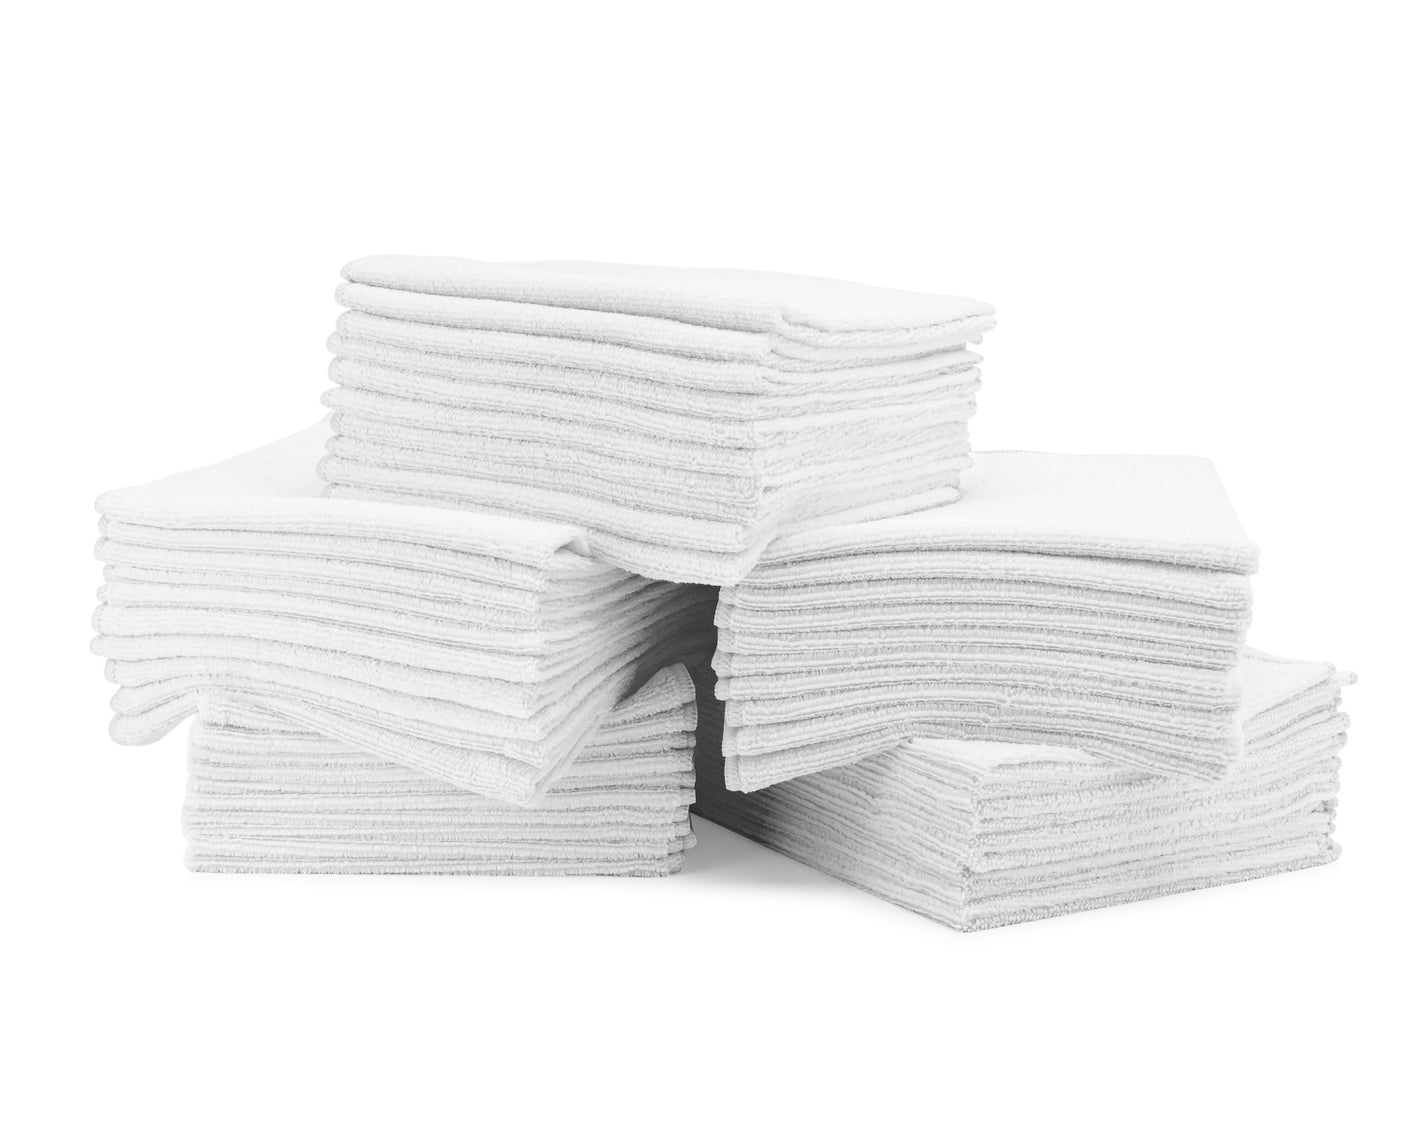 16 x 16 Microfiber Towels Bulk 50 Pack White